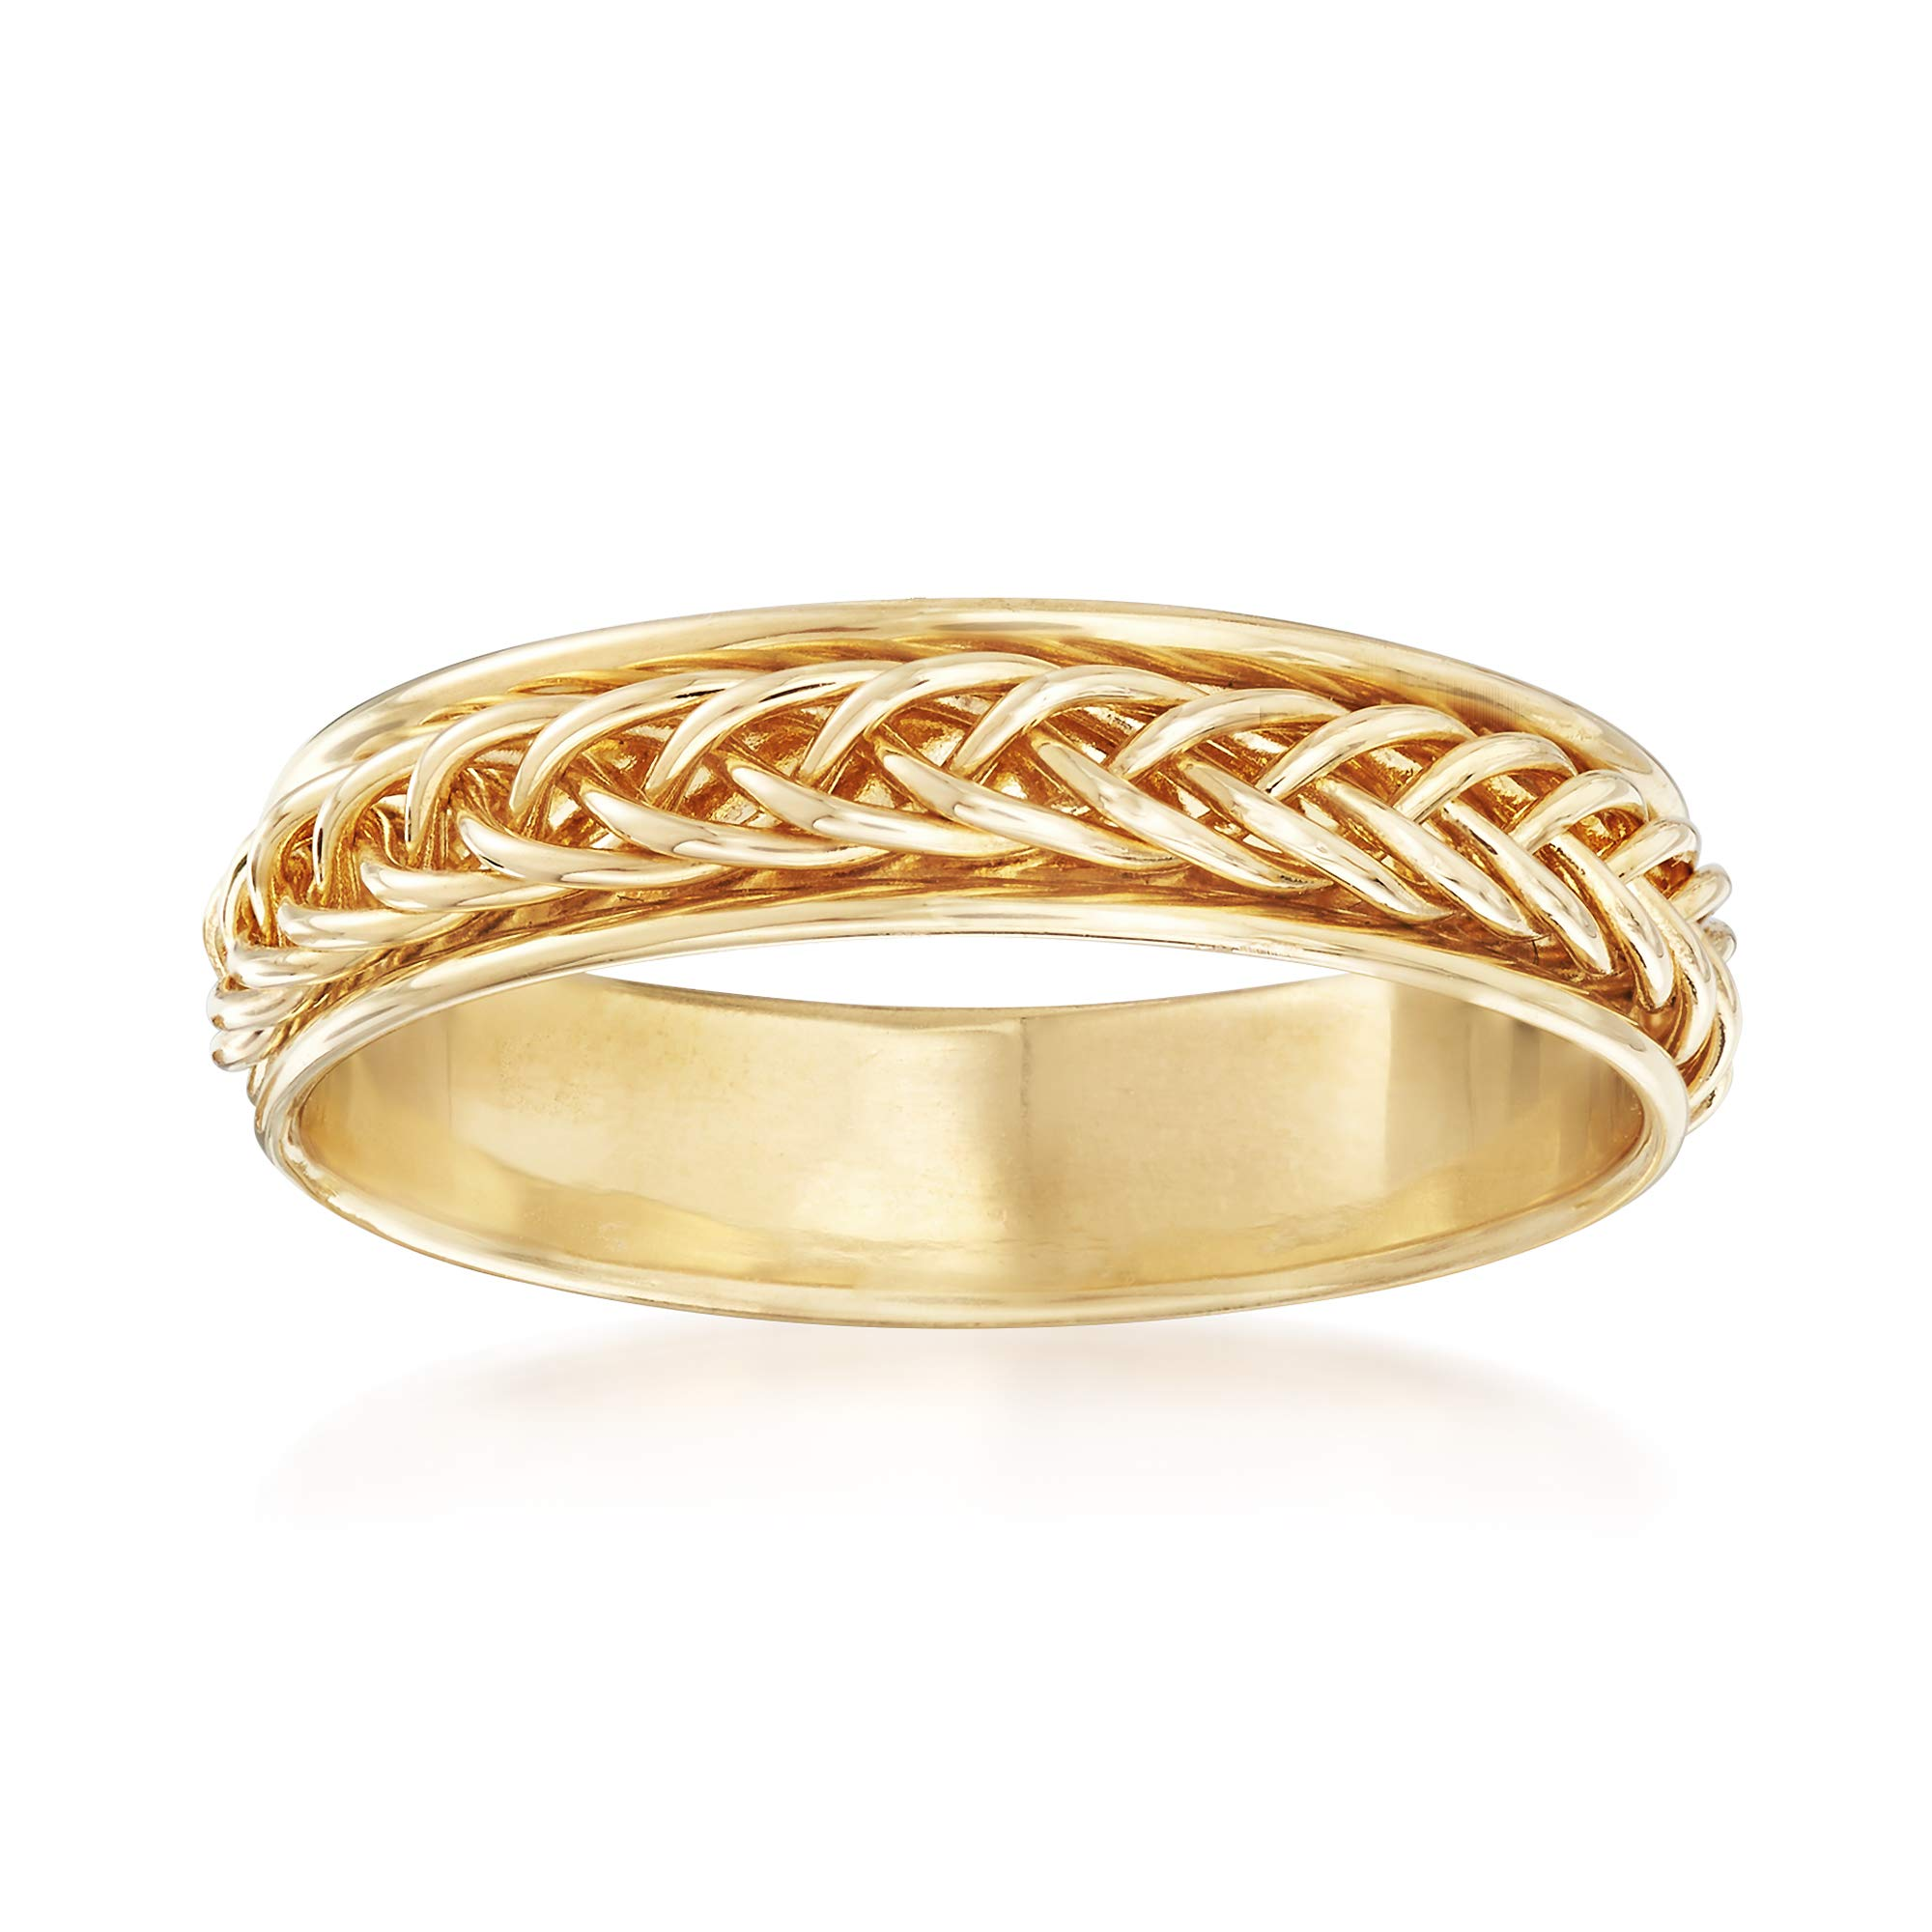 Ross-Simons 14kt Yellow Gold Small Braided Band Ring